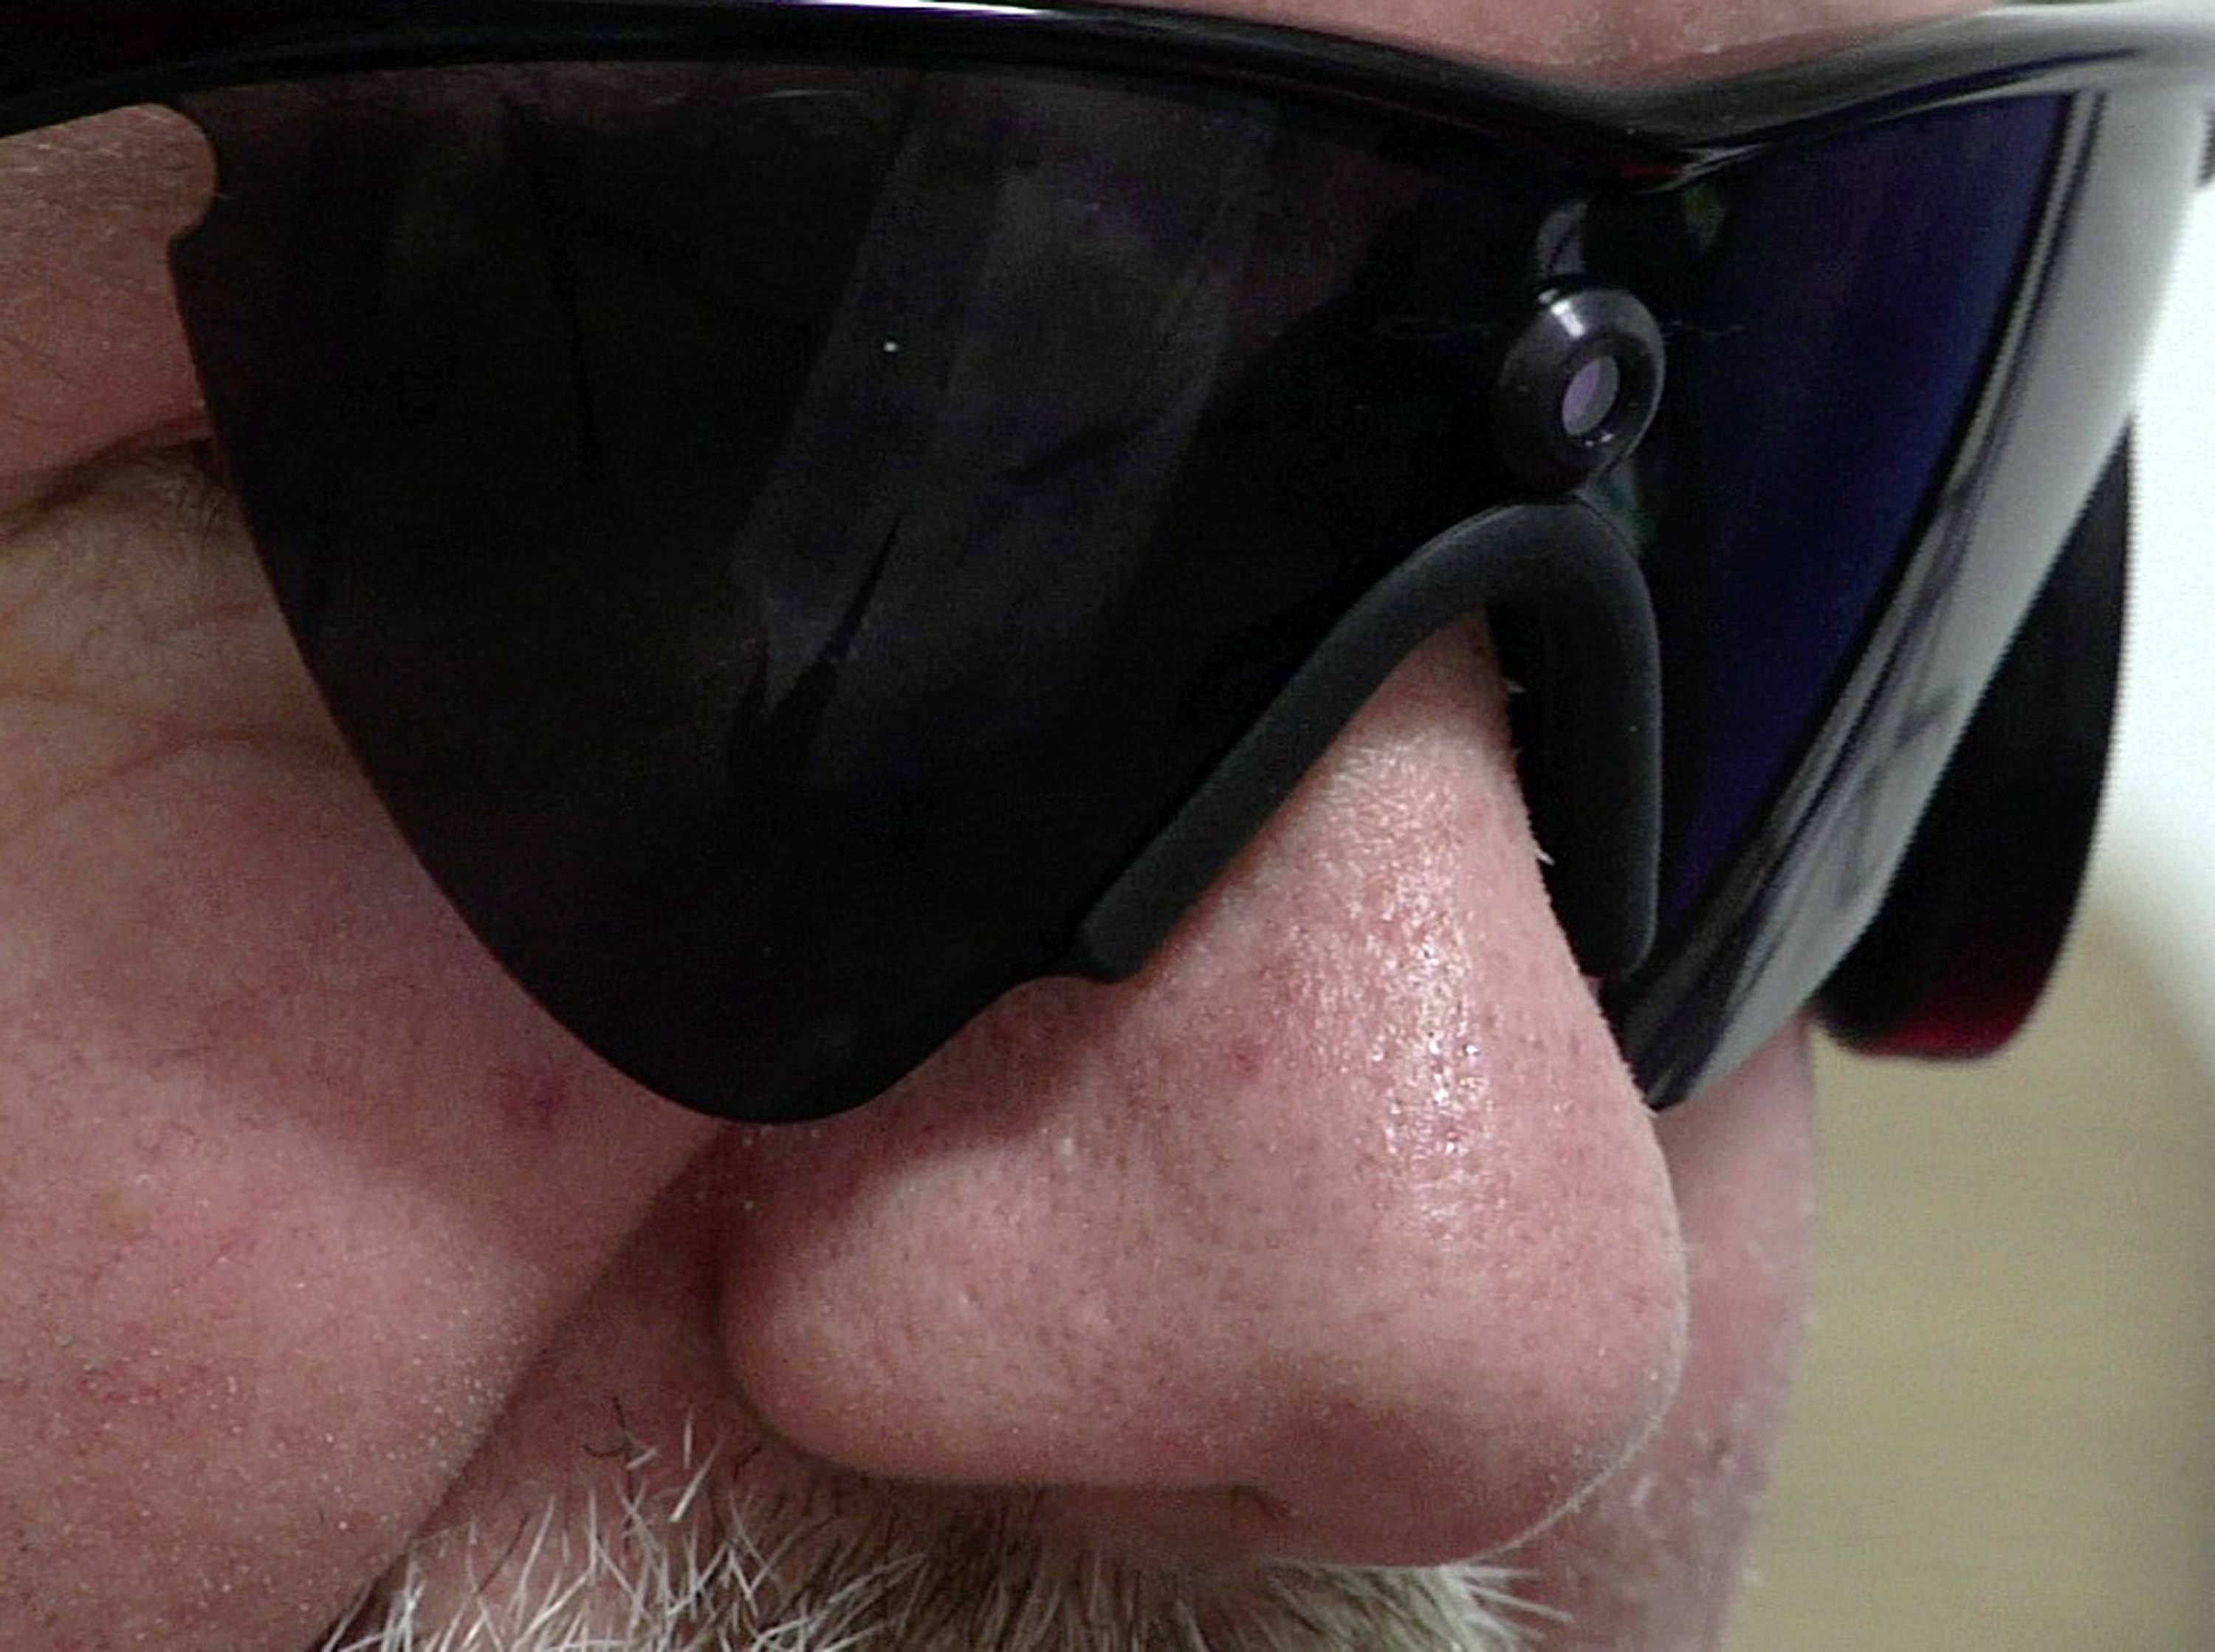 Roger Pontz wears special glasses that house a small video camera and transmitter at the University of Michigan Kellogg Eye Center in Ann Arbor, Mich. The glasses are part of a system developed by a California company that wirelessly transmits images from the camera, converted into a series of electrical pulses, to an array of electrodes on the surface of Pontz' retina.